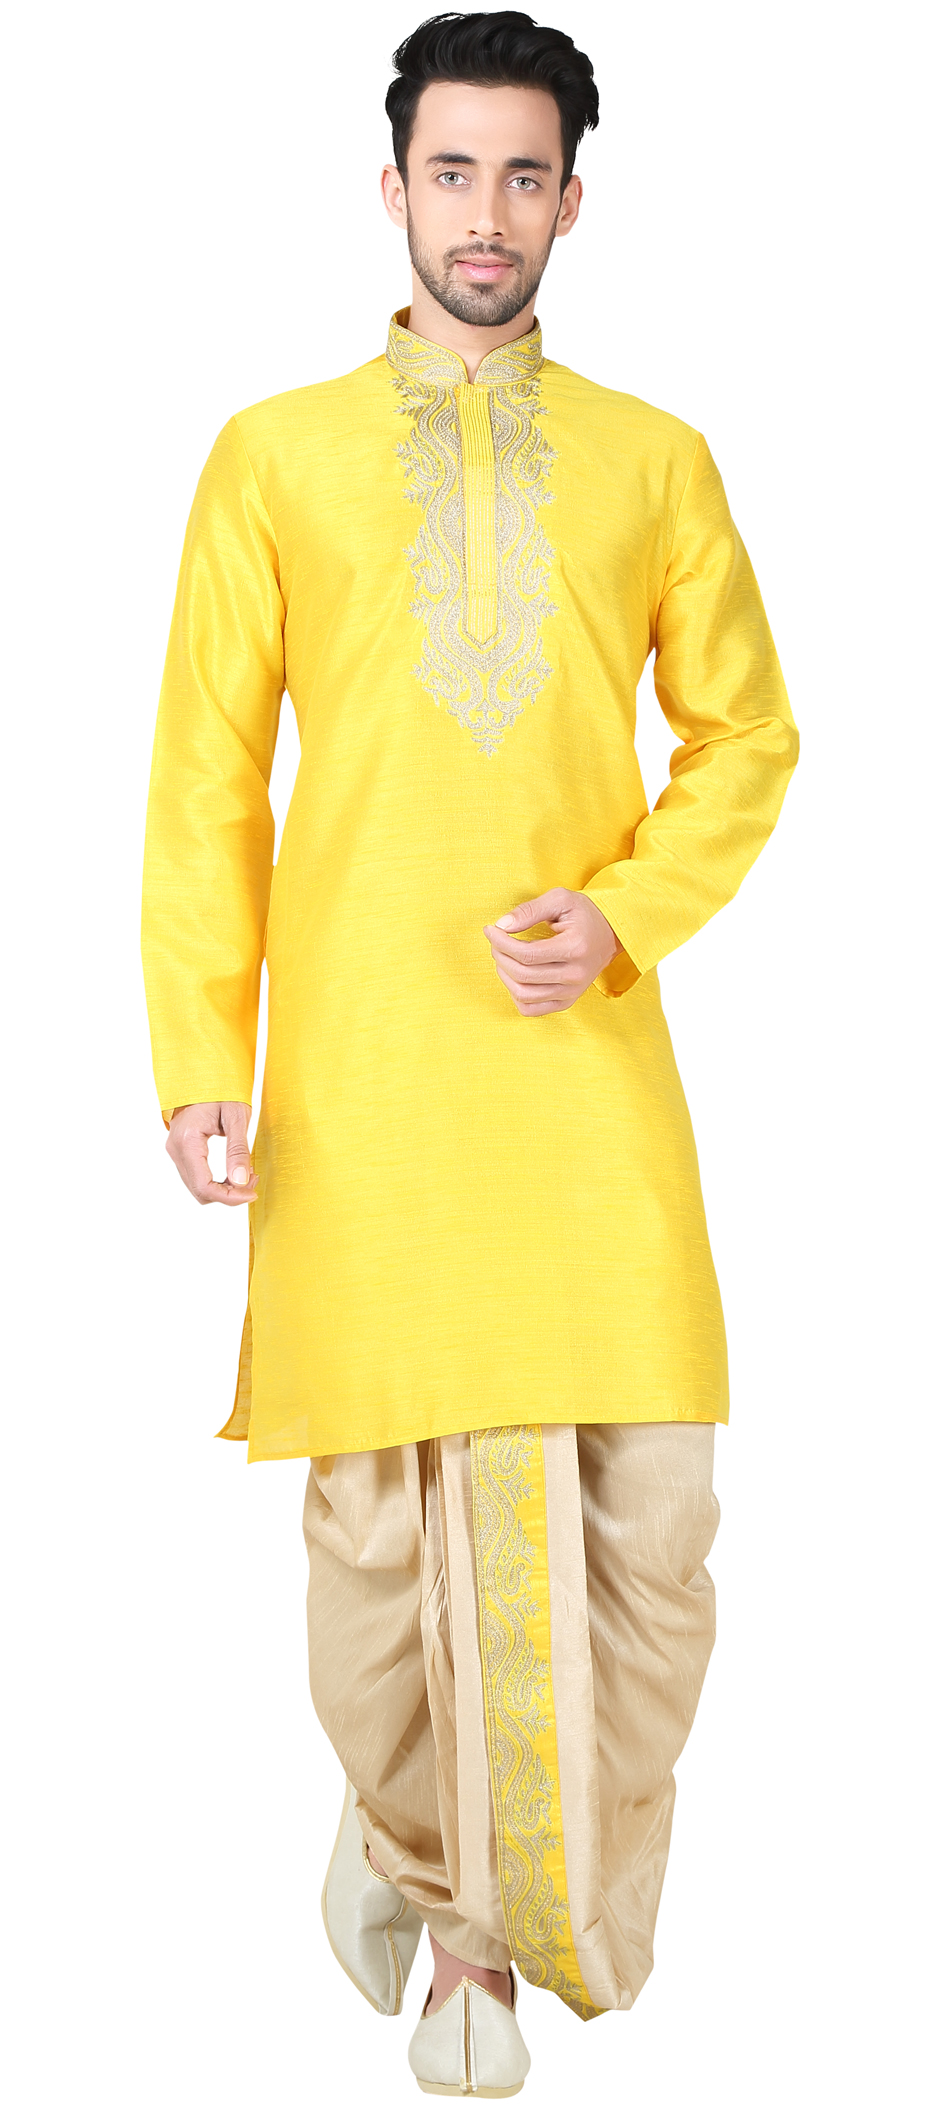 Hat Embroidery Machine For Sale >> 505919: Yellow color family stitched Dhoti Kurta